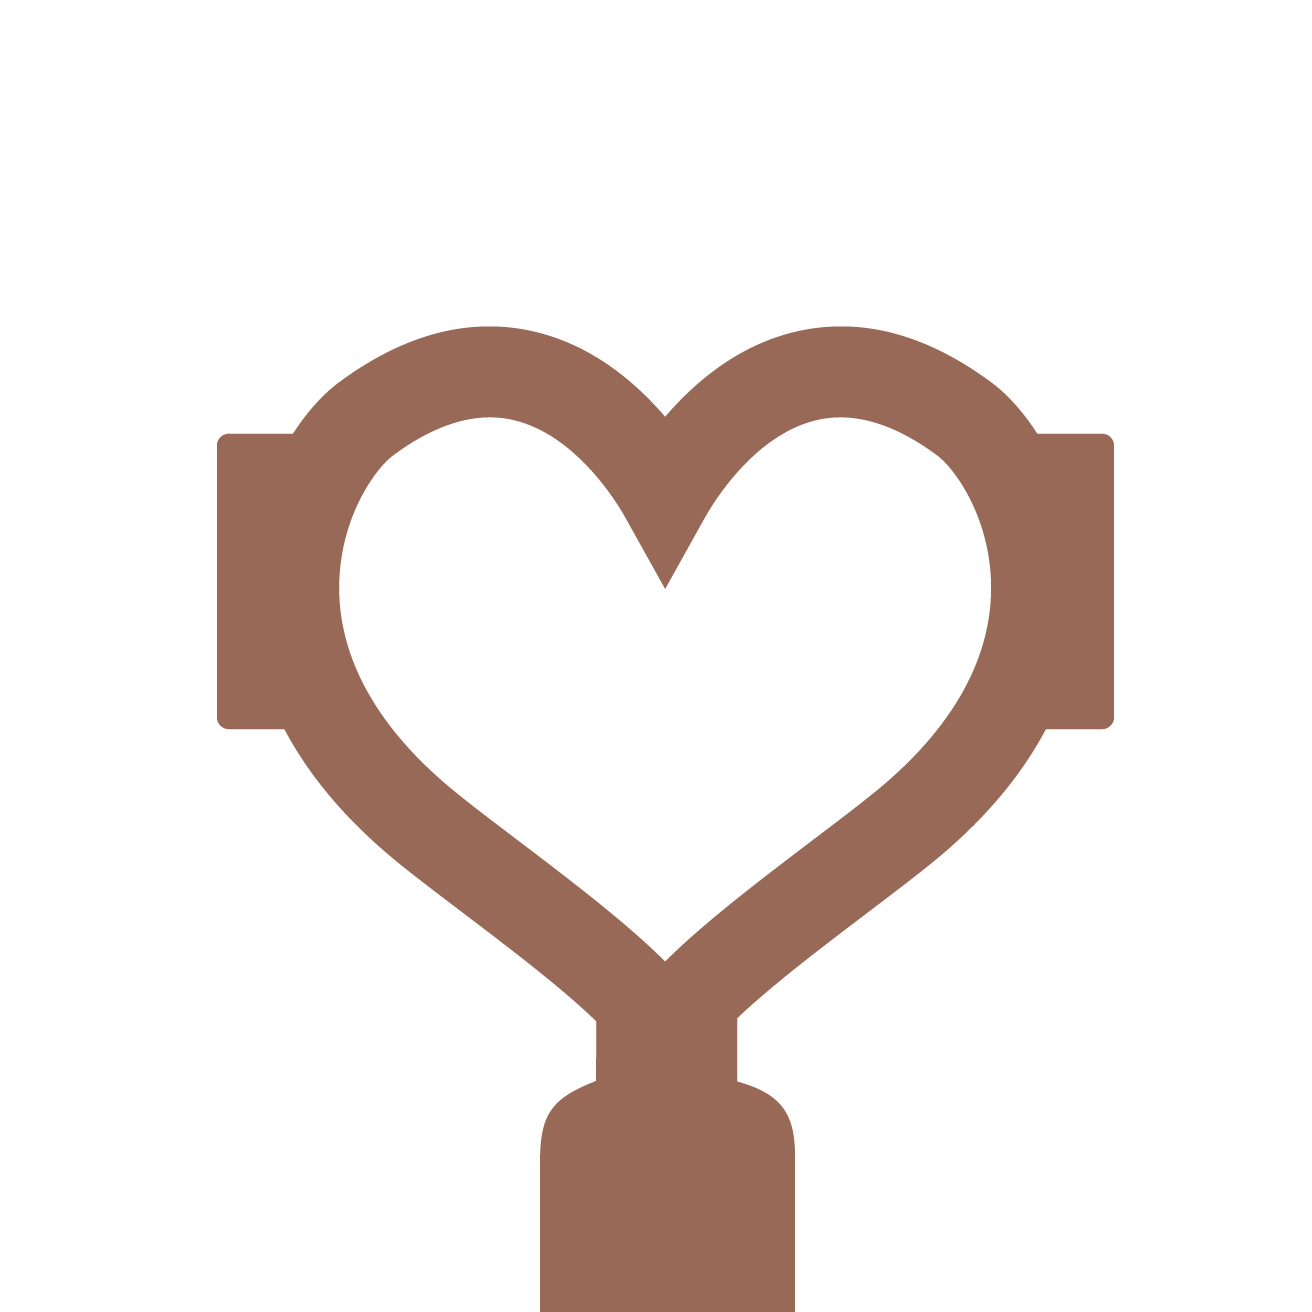 Kruve Coffee Sifter - 12 Filters & Bamboo Sieve holder